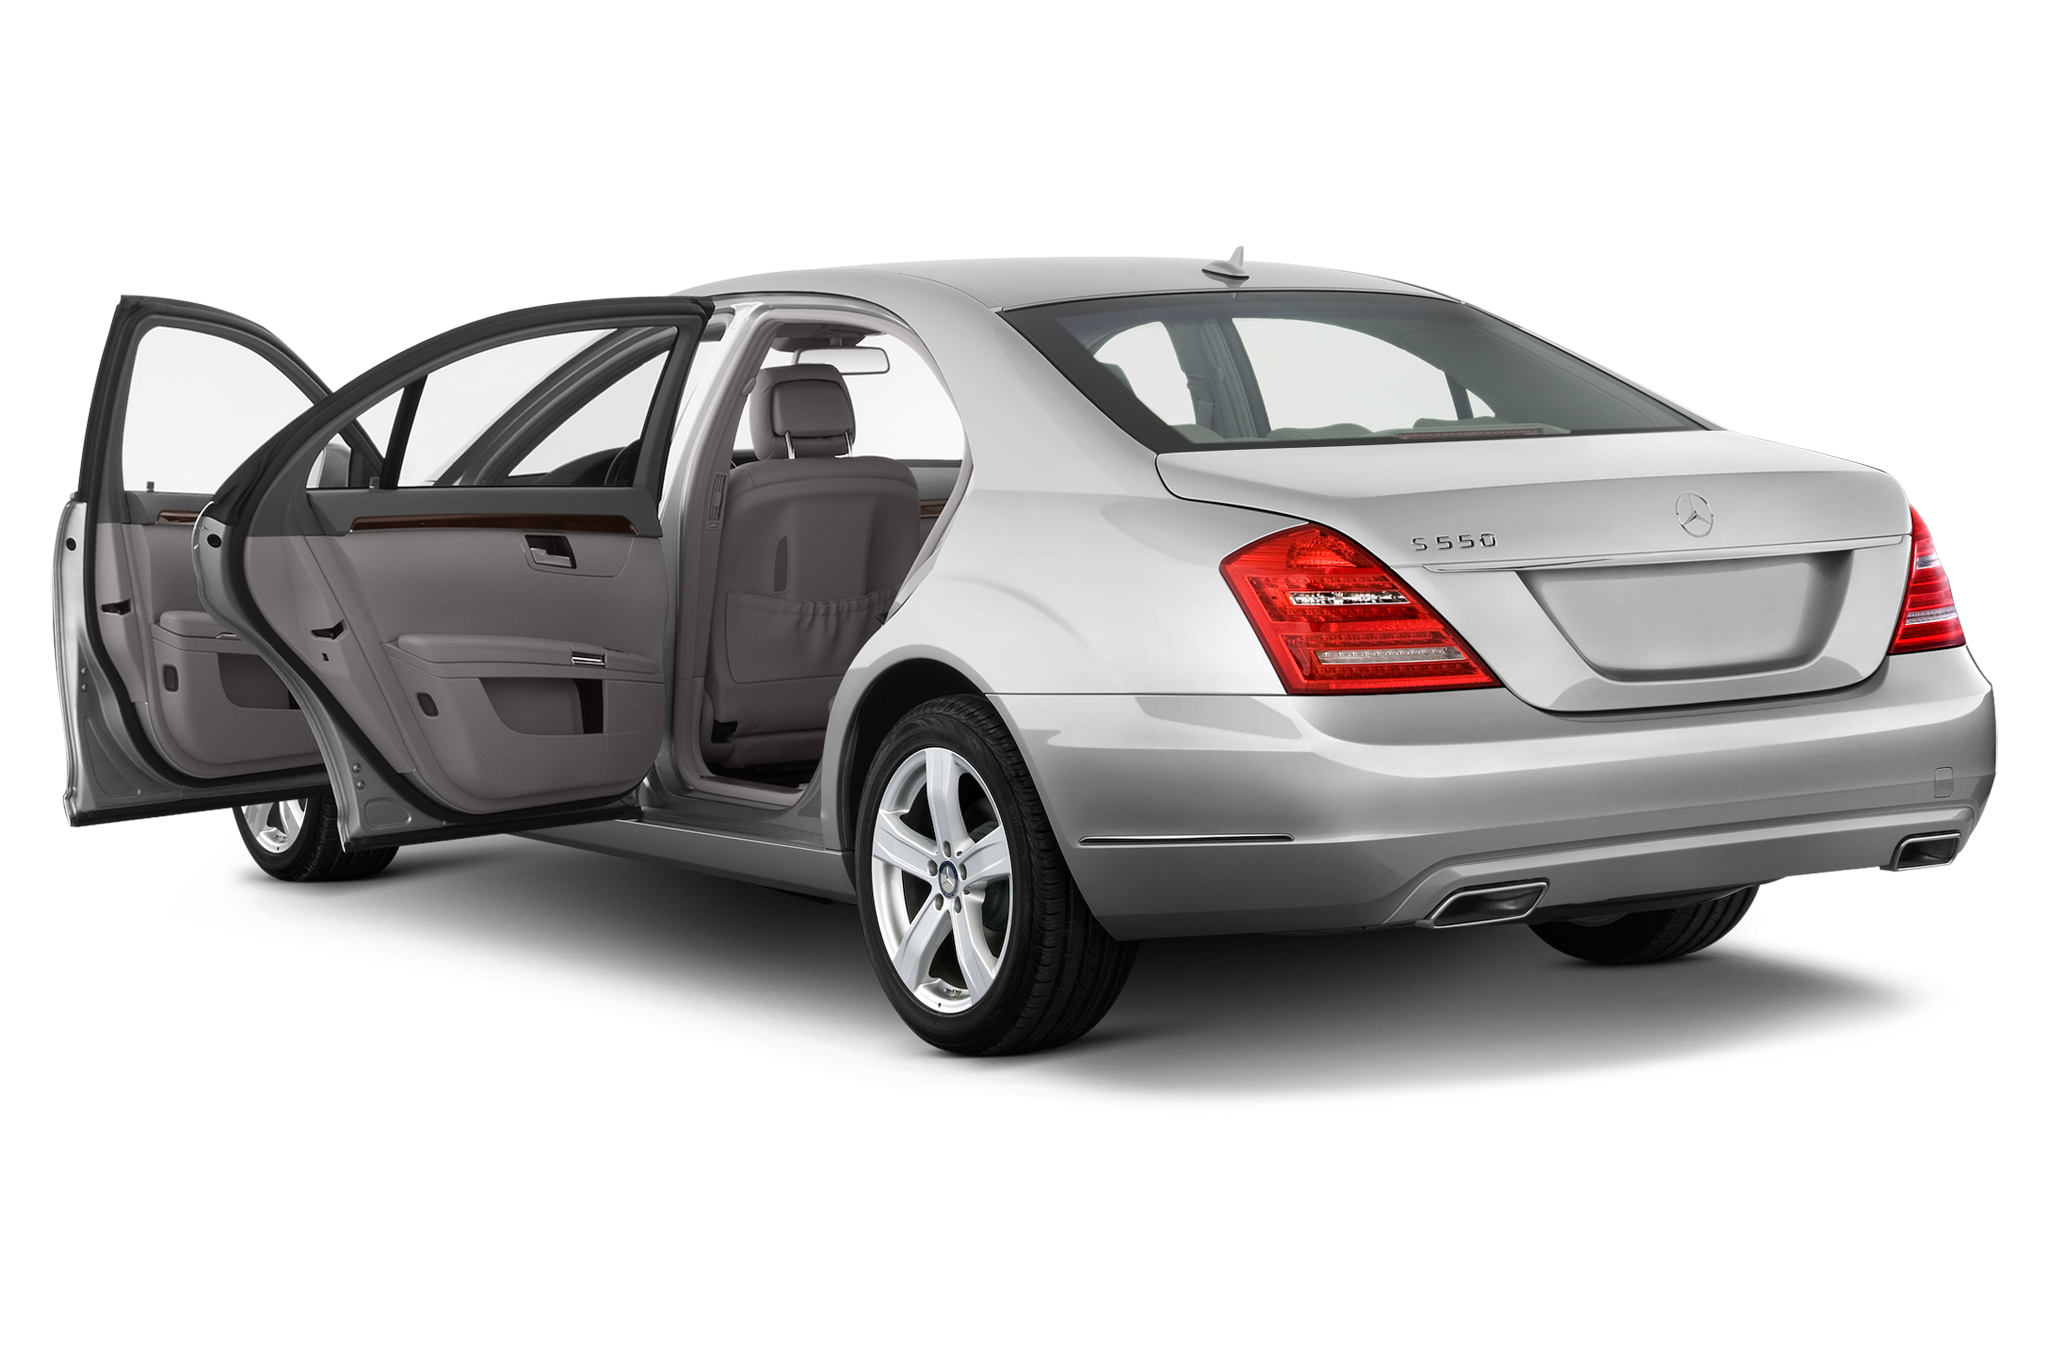 2011 mercedes benz s550 editors 39 notebook automobile for Mercedes benz s550 lease